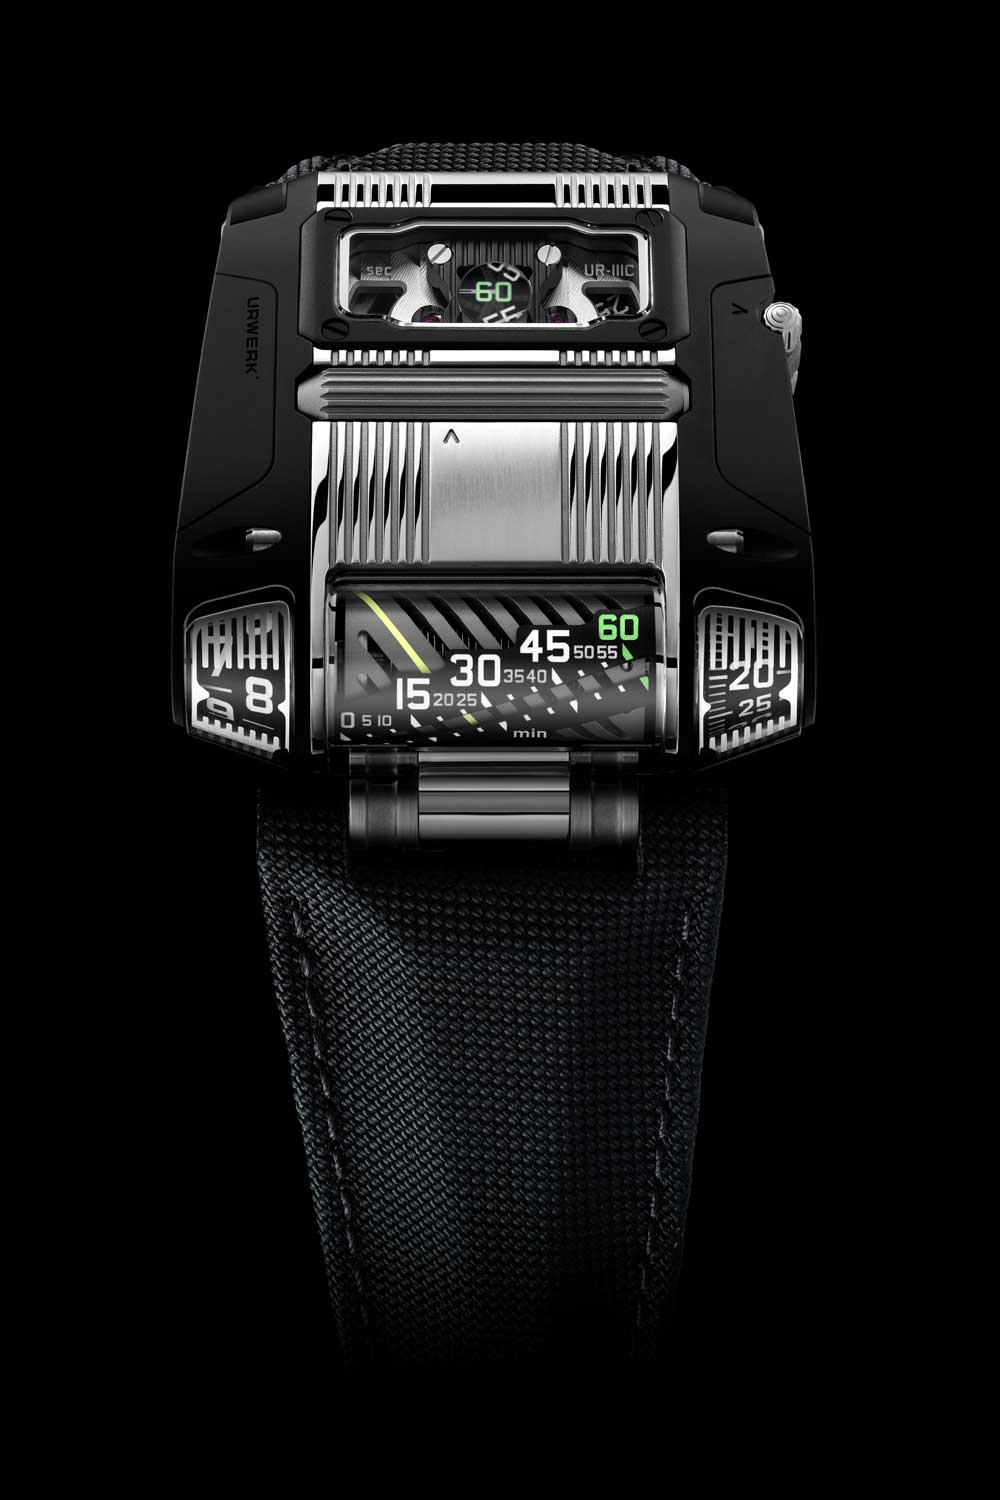 URWERK UR-111C Two-Tone